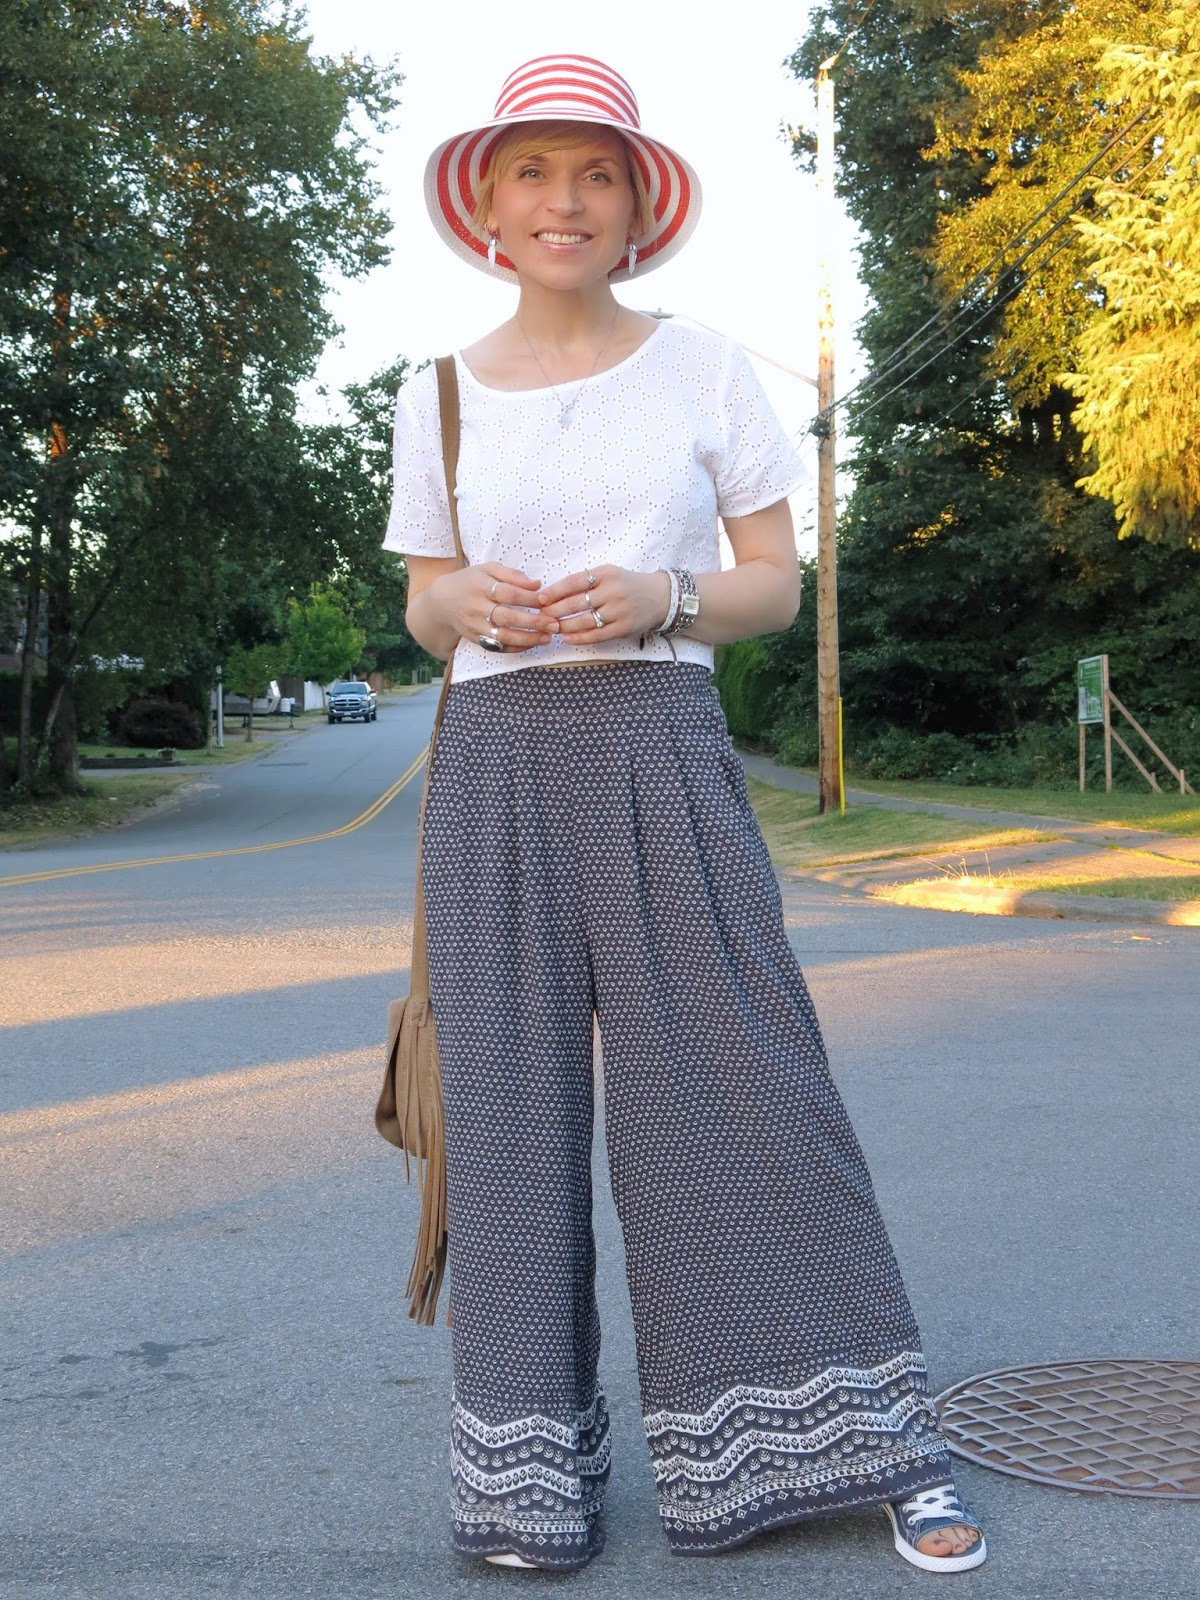 styling palazzo pants with a white eyelet crop top and orange striped hat